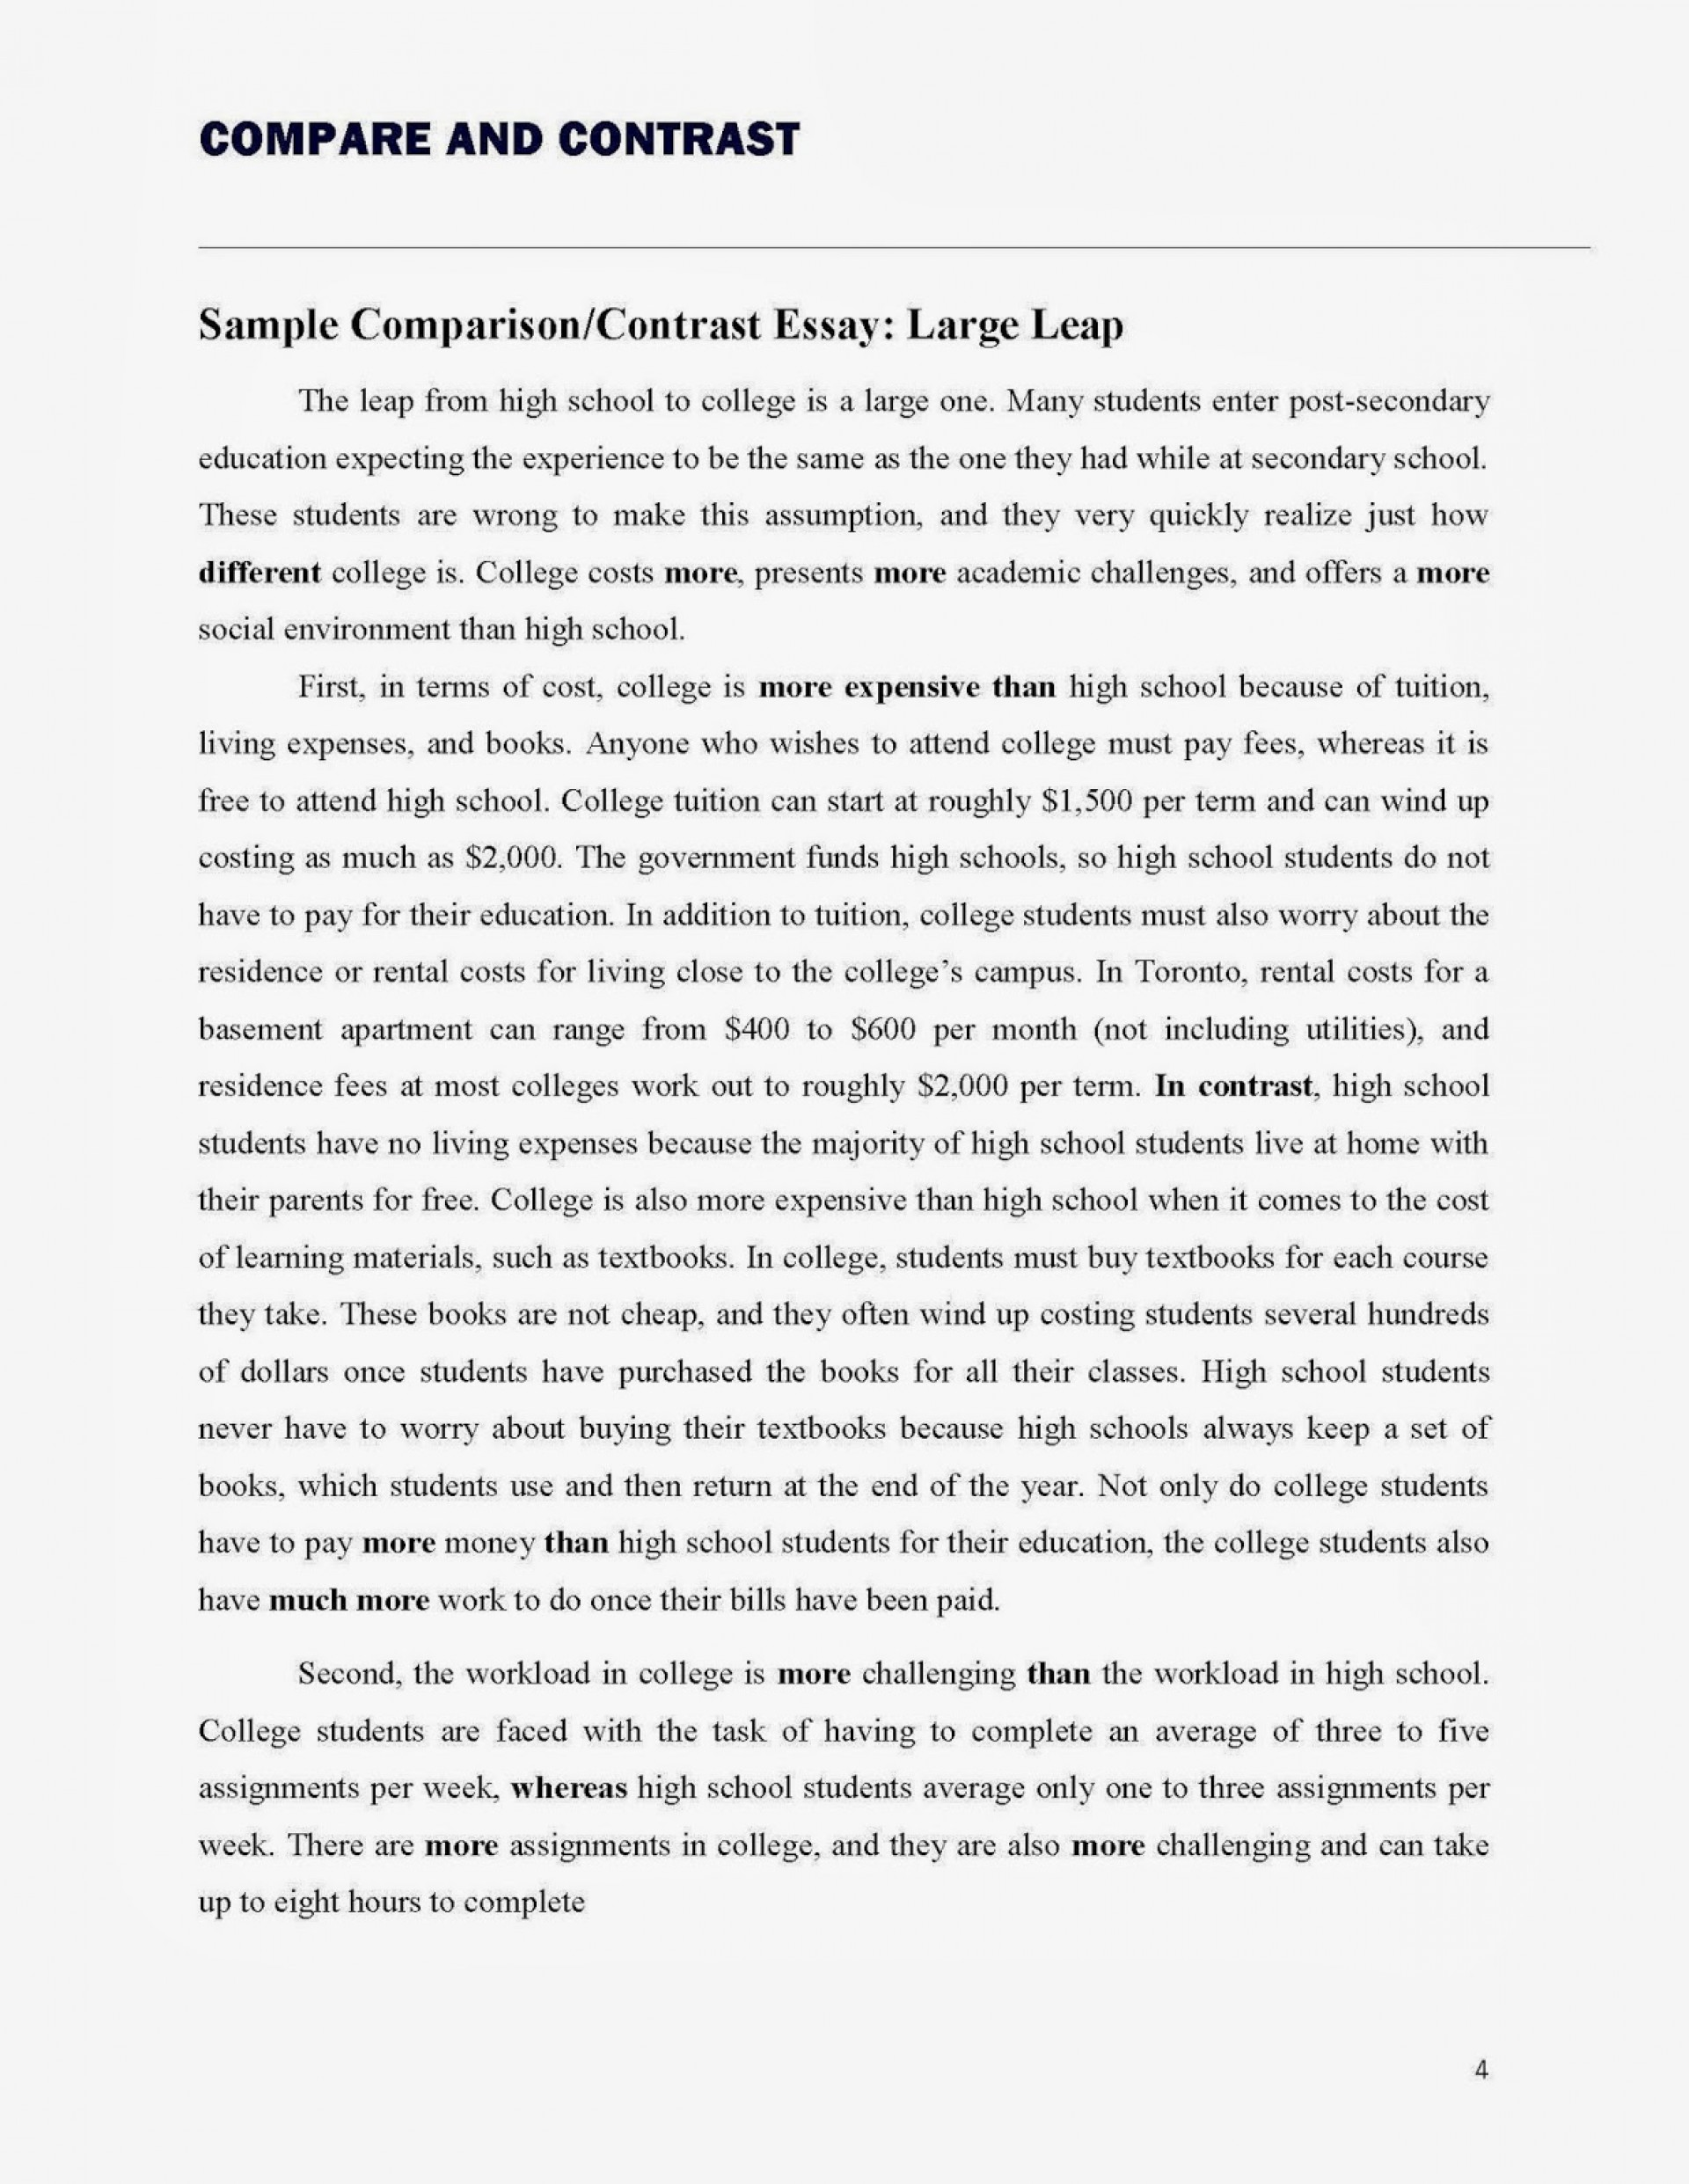 011 Compare And Contrast Essay Compareandcontrastessay Page 4h125 Frightening Sample 4th Grade Introduction Paragraph Ideas 1920